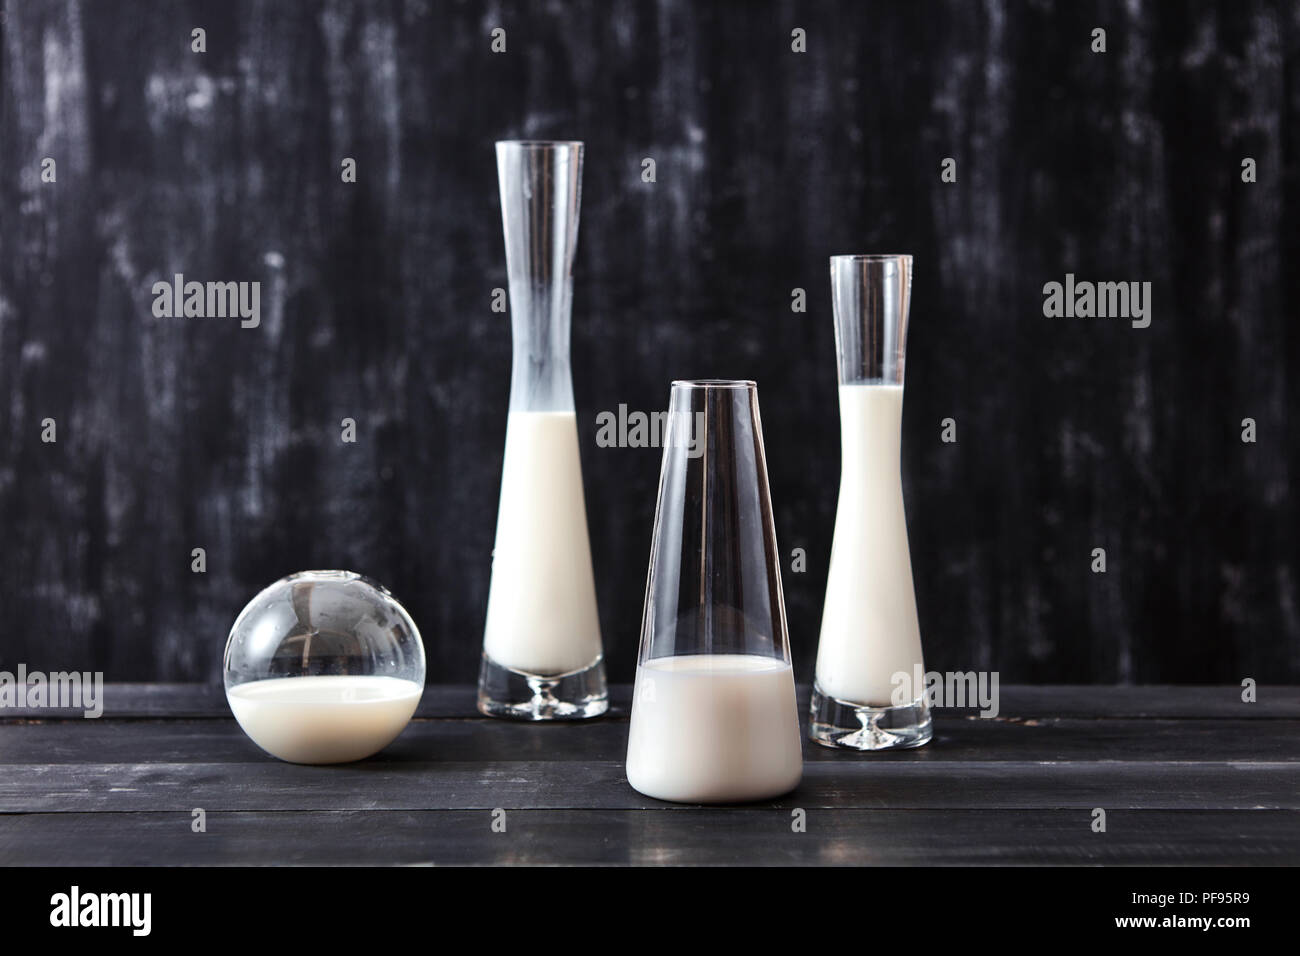 Glass containers of different shapes with white liquid or milk on a black background with place under text. Concept of jewish holiday Shavuot. - Stock Image